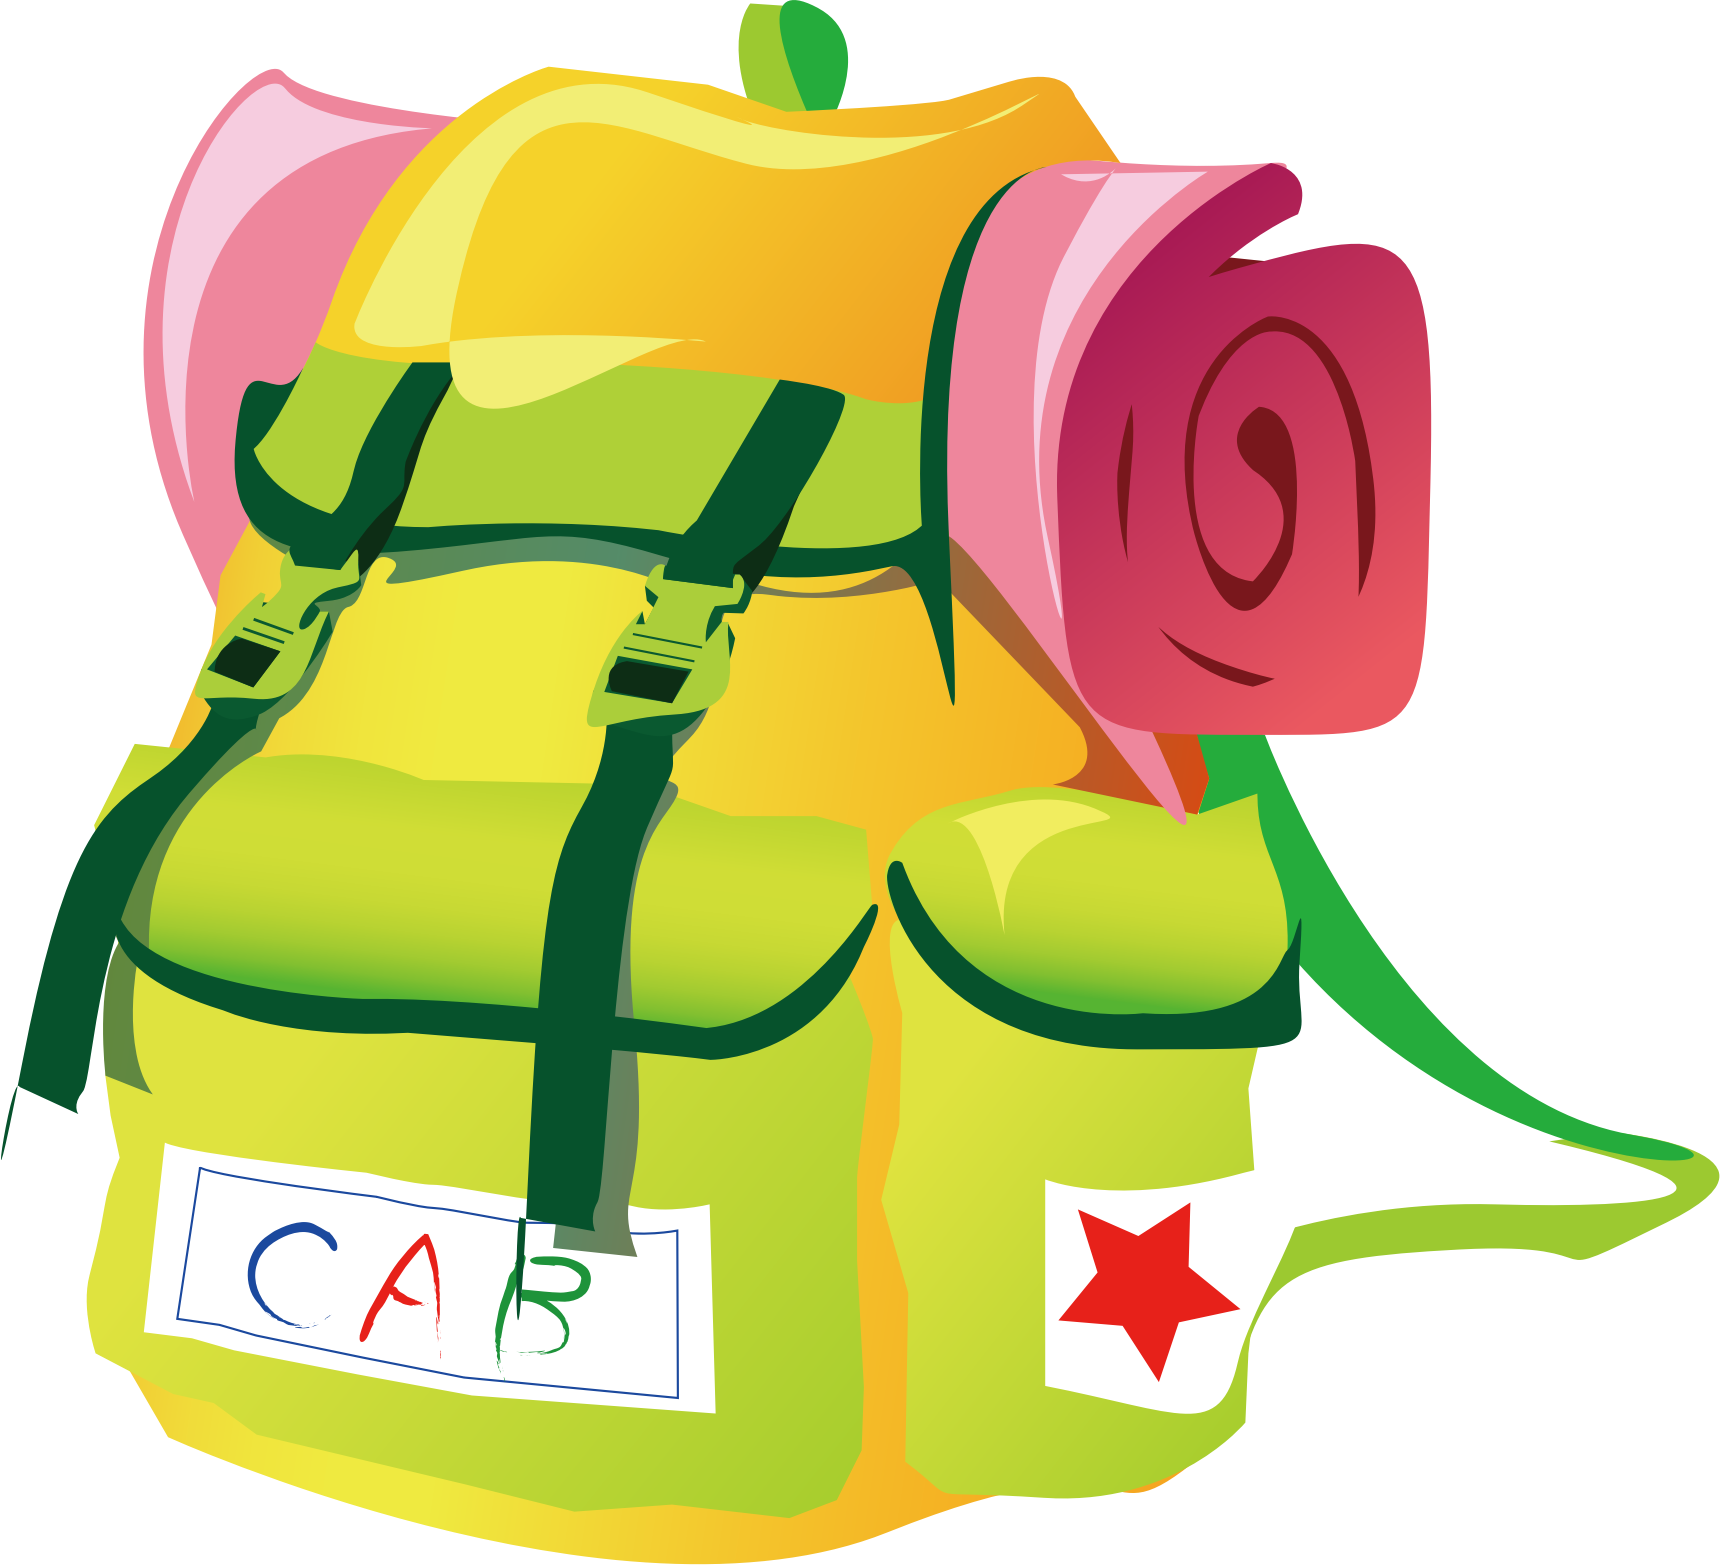 Travel icons png free. Clipart backpack small backpack